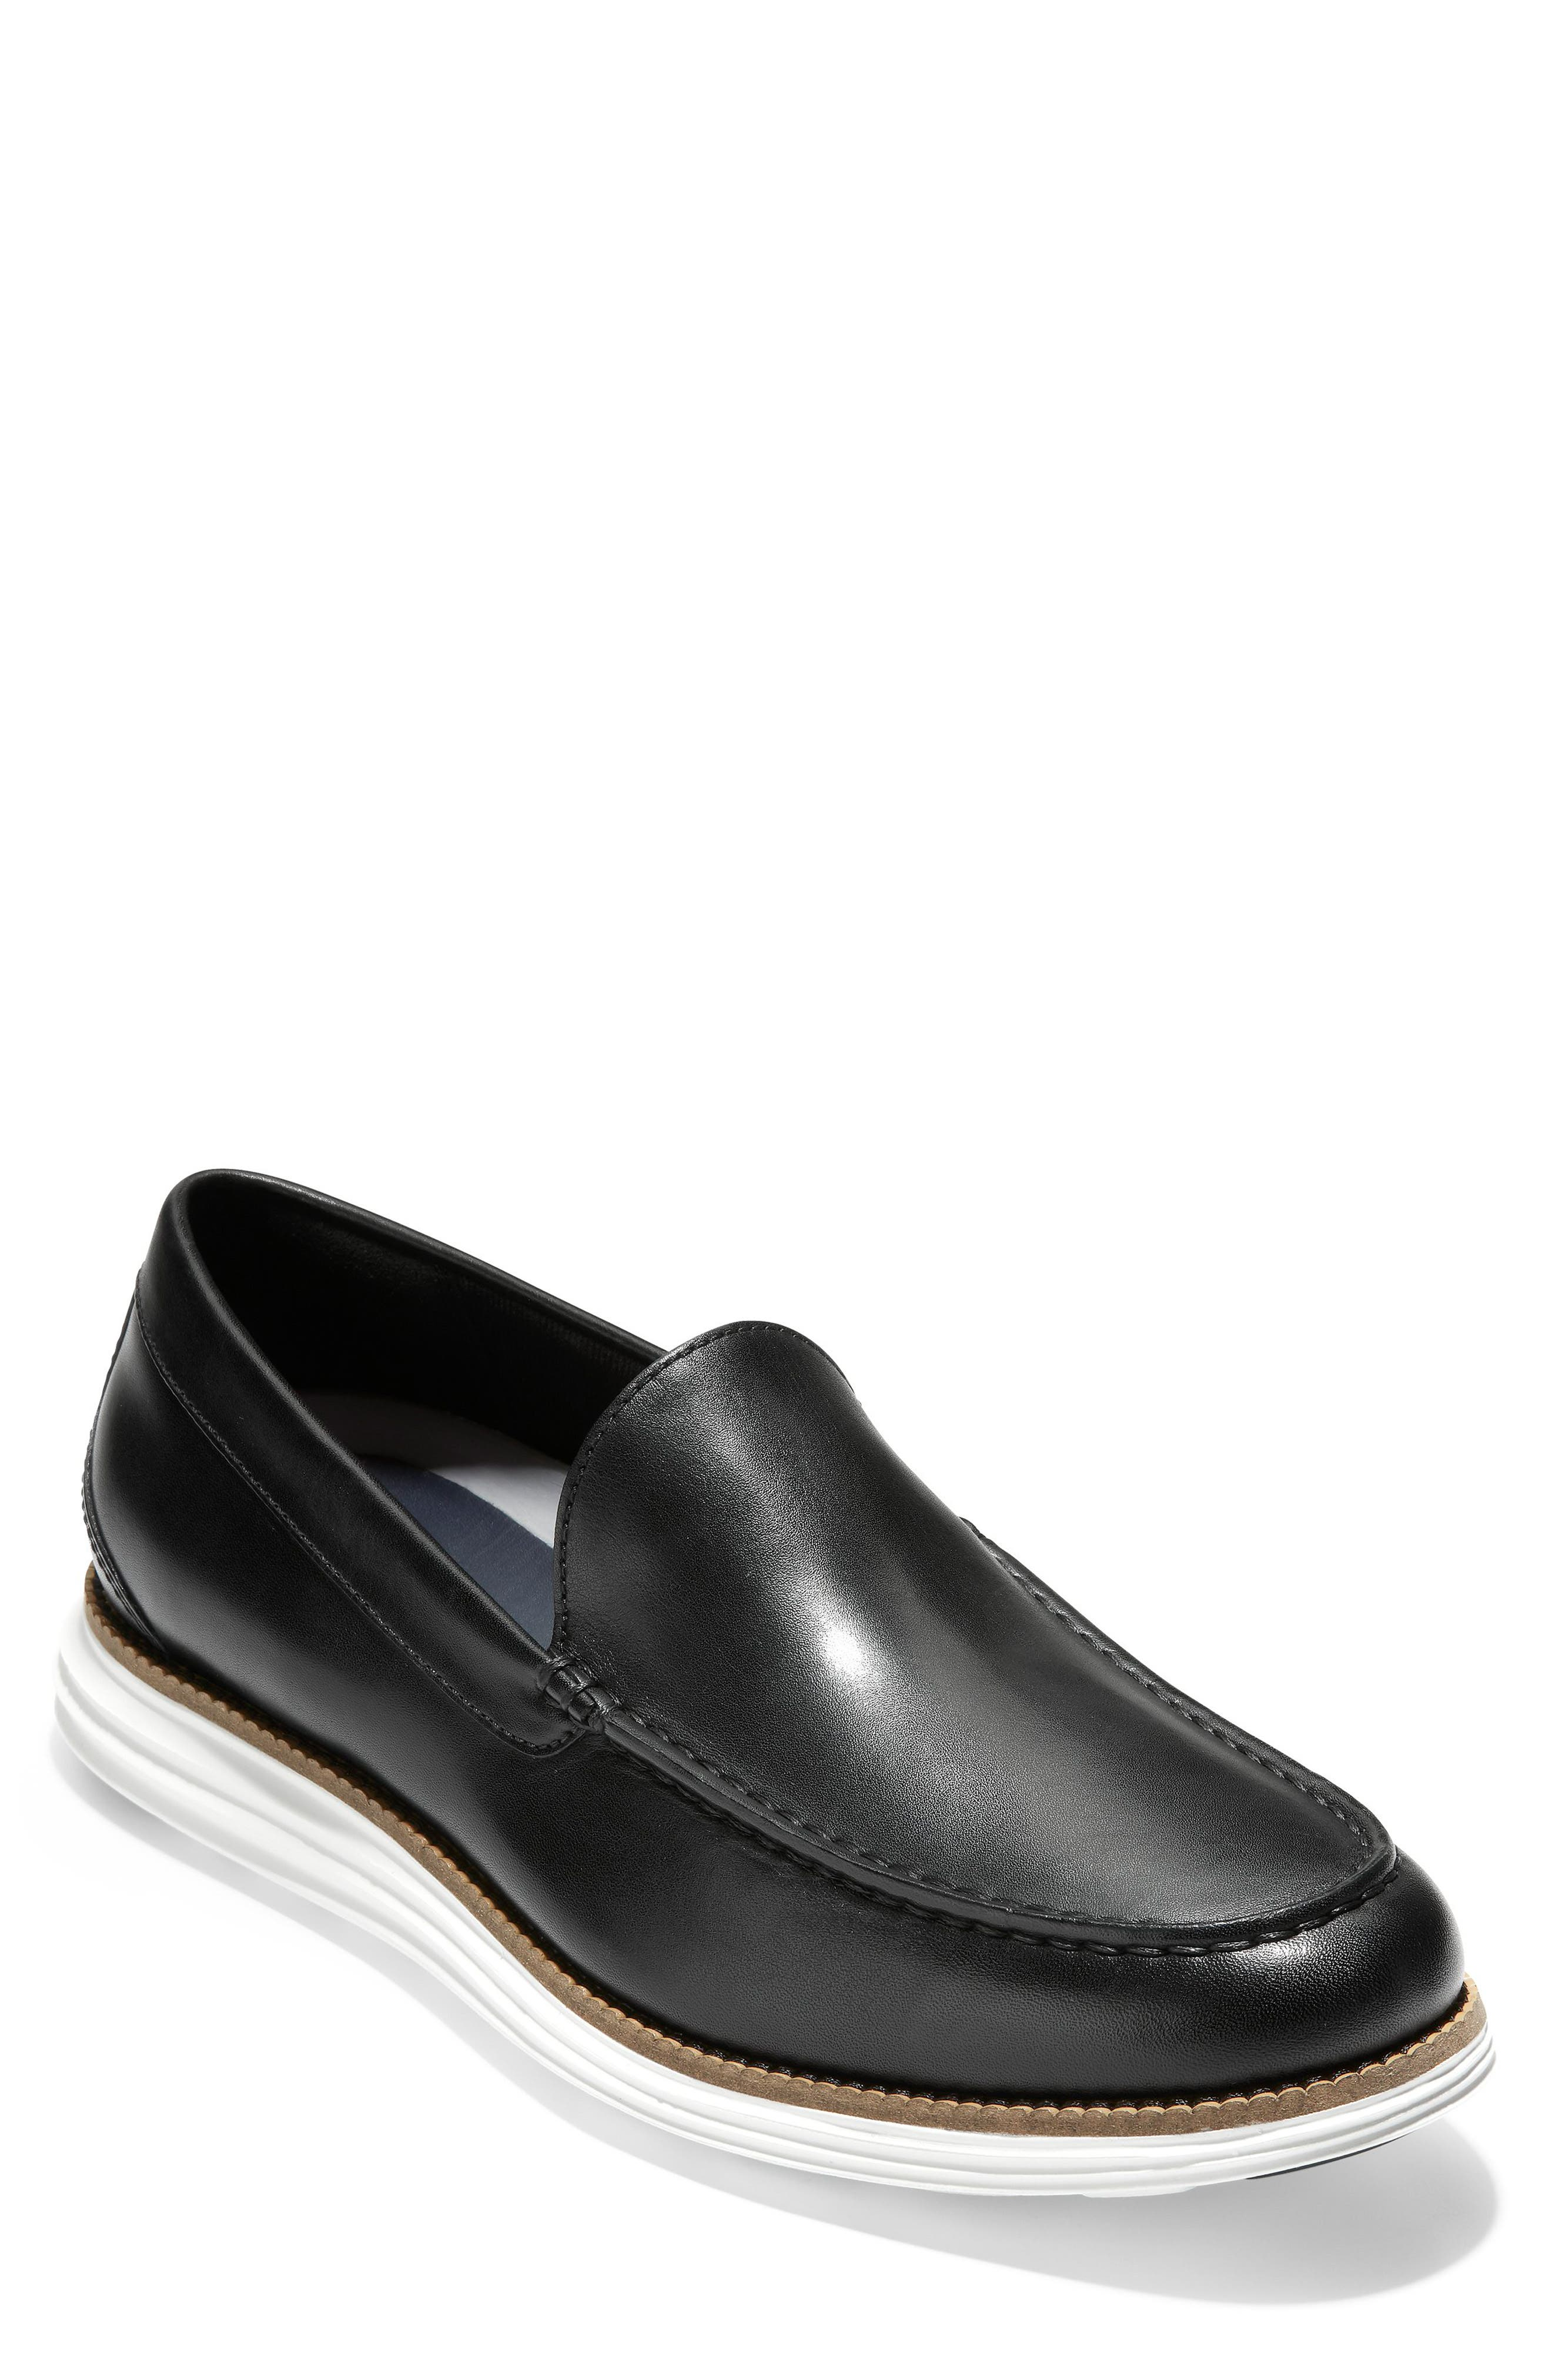 COLE HAAN, Original Grand Loafer, Main thumbnail 1, color, BLACK/ OPTIC WHITE LEATHER